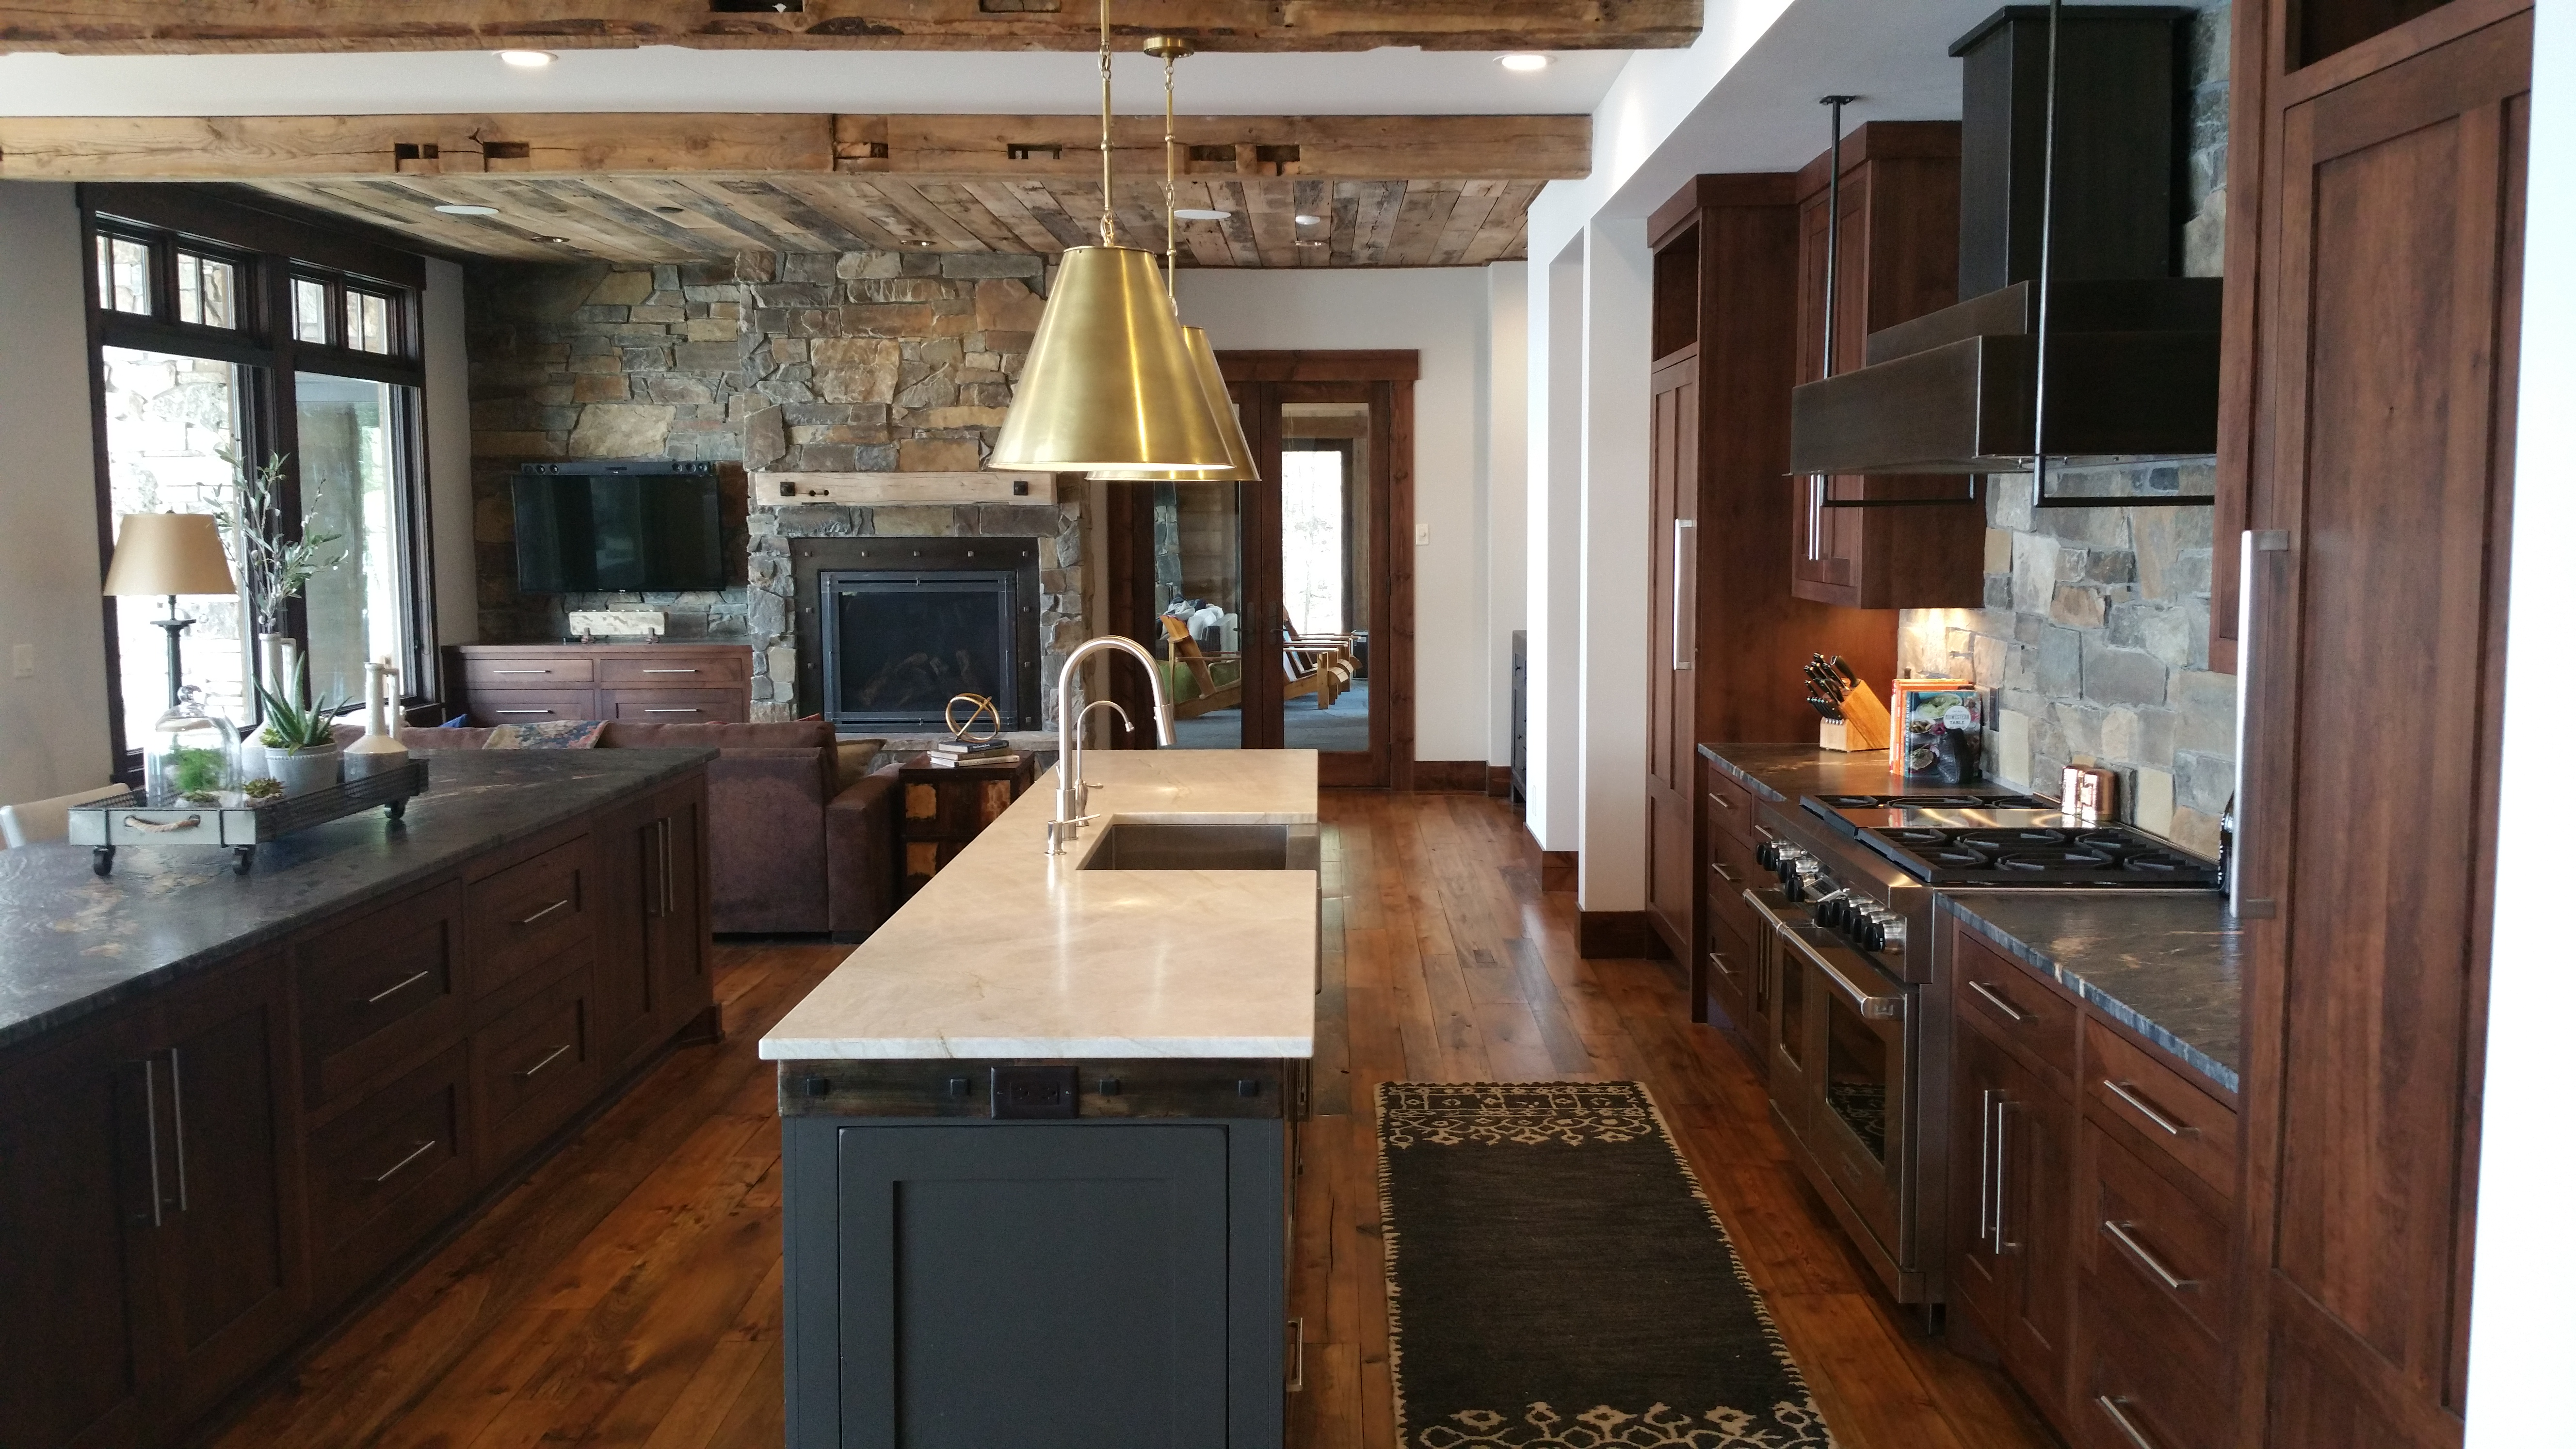 Charmant Rustic Shaker Kitchen With Double Island